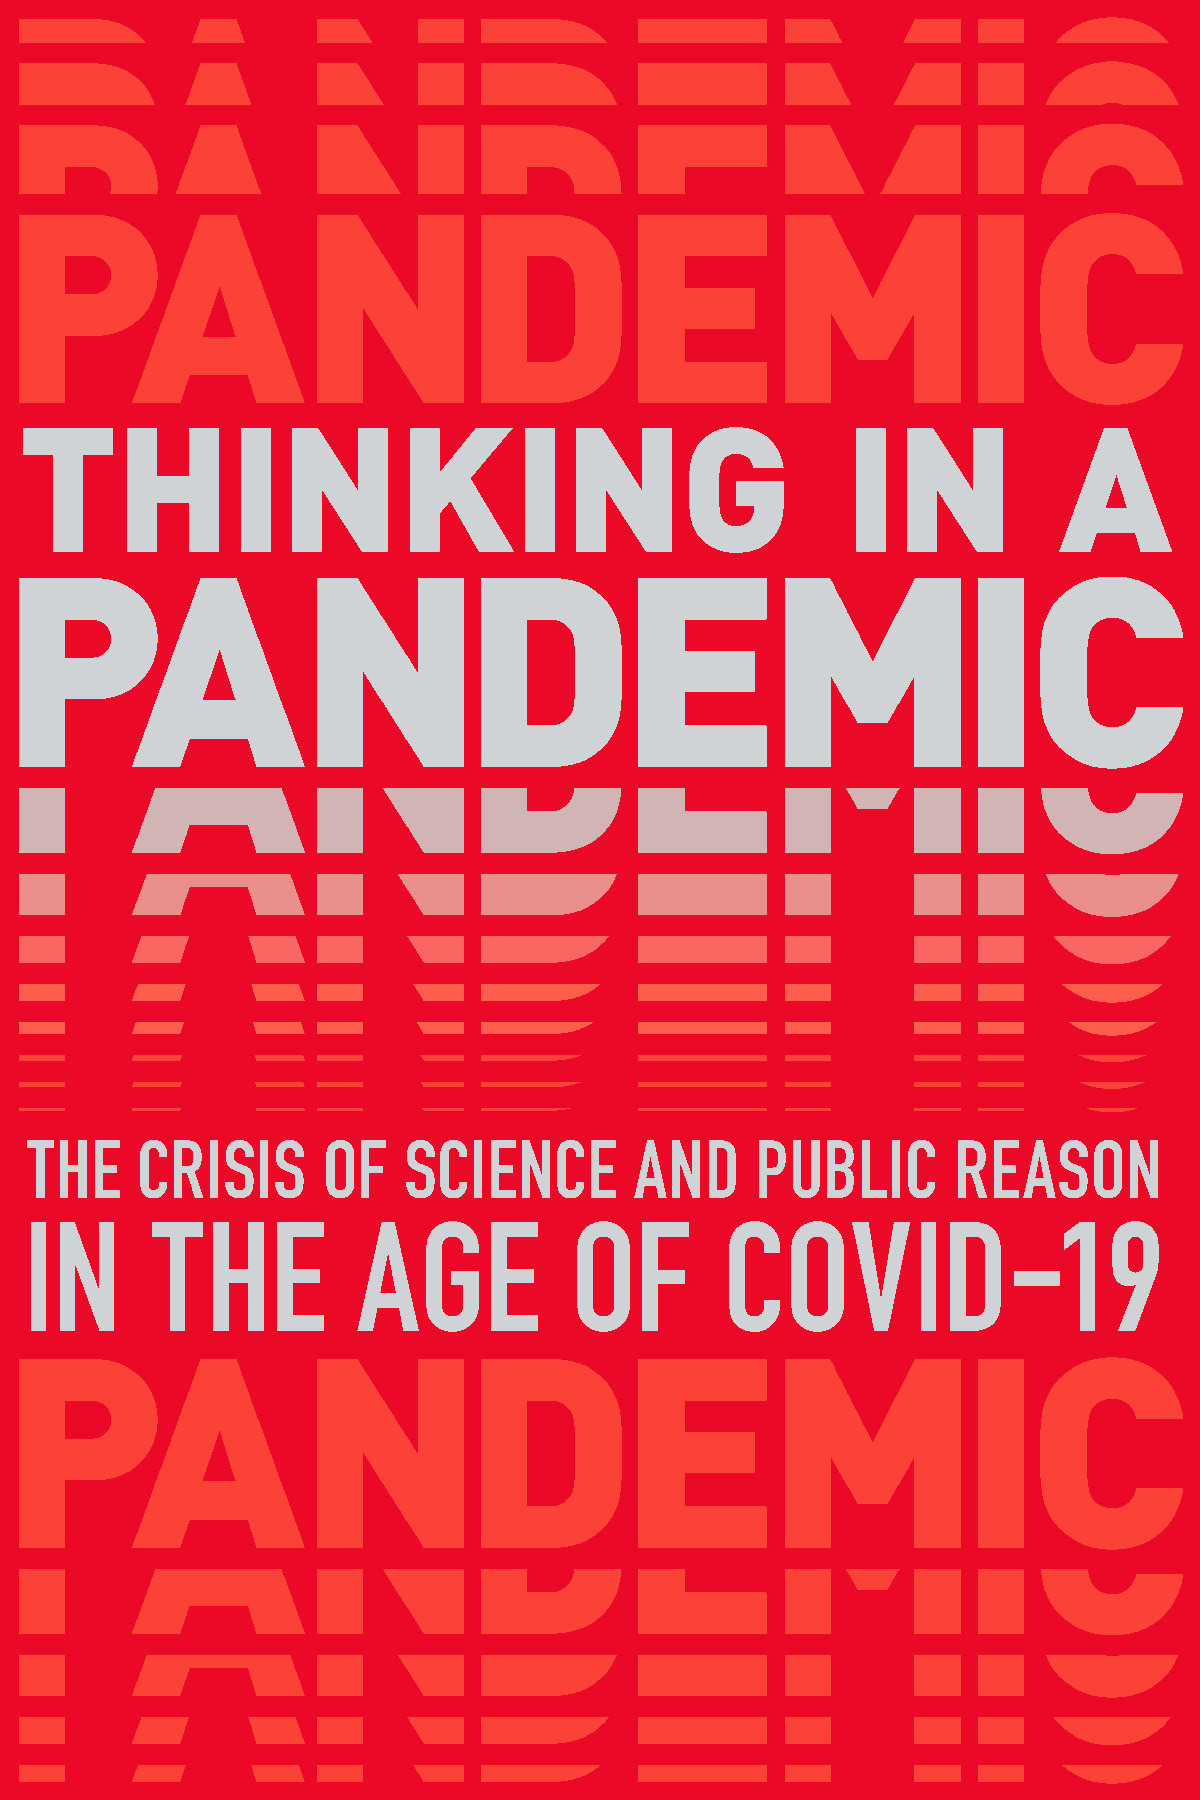 Thinking_in_a_pandemic_cover